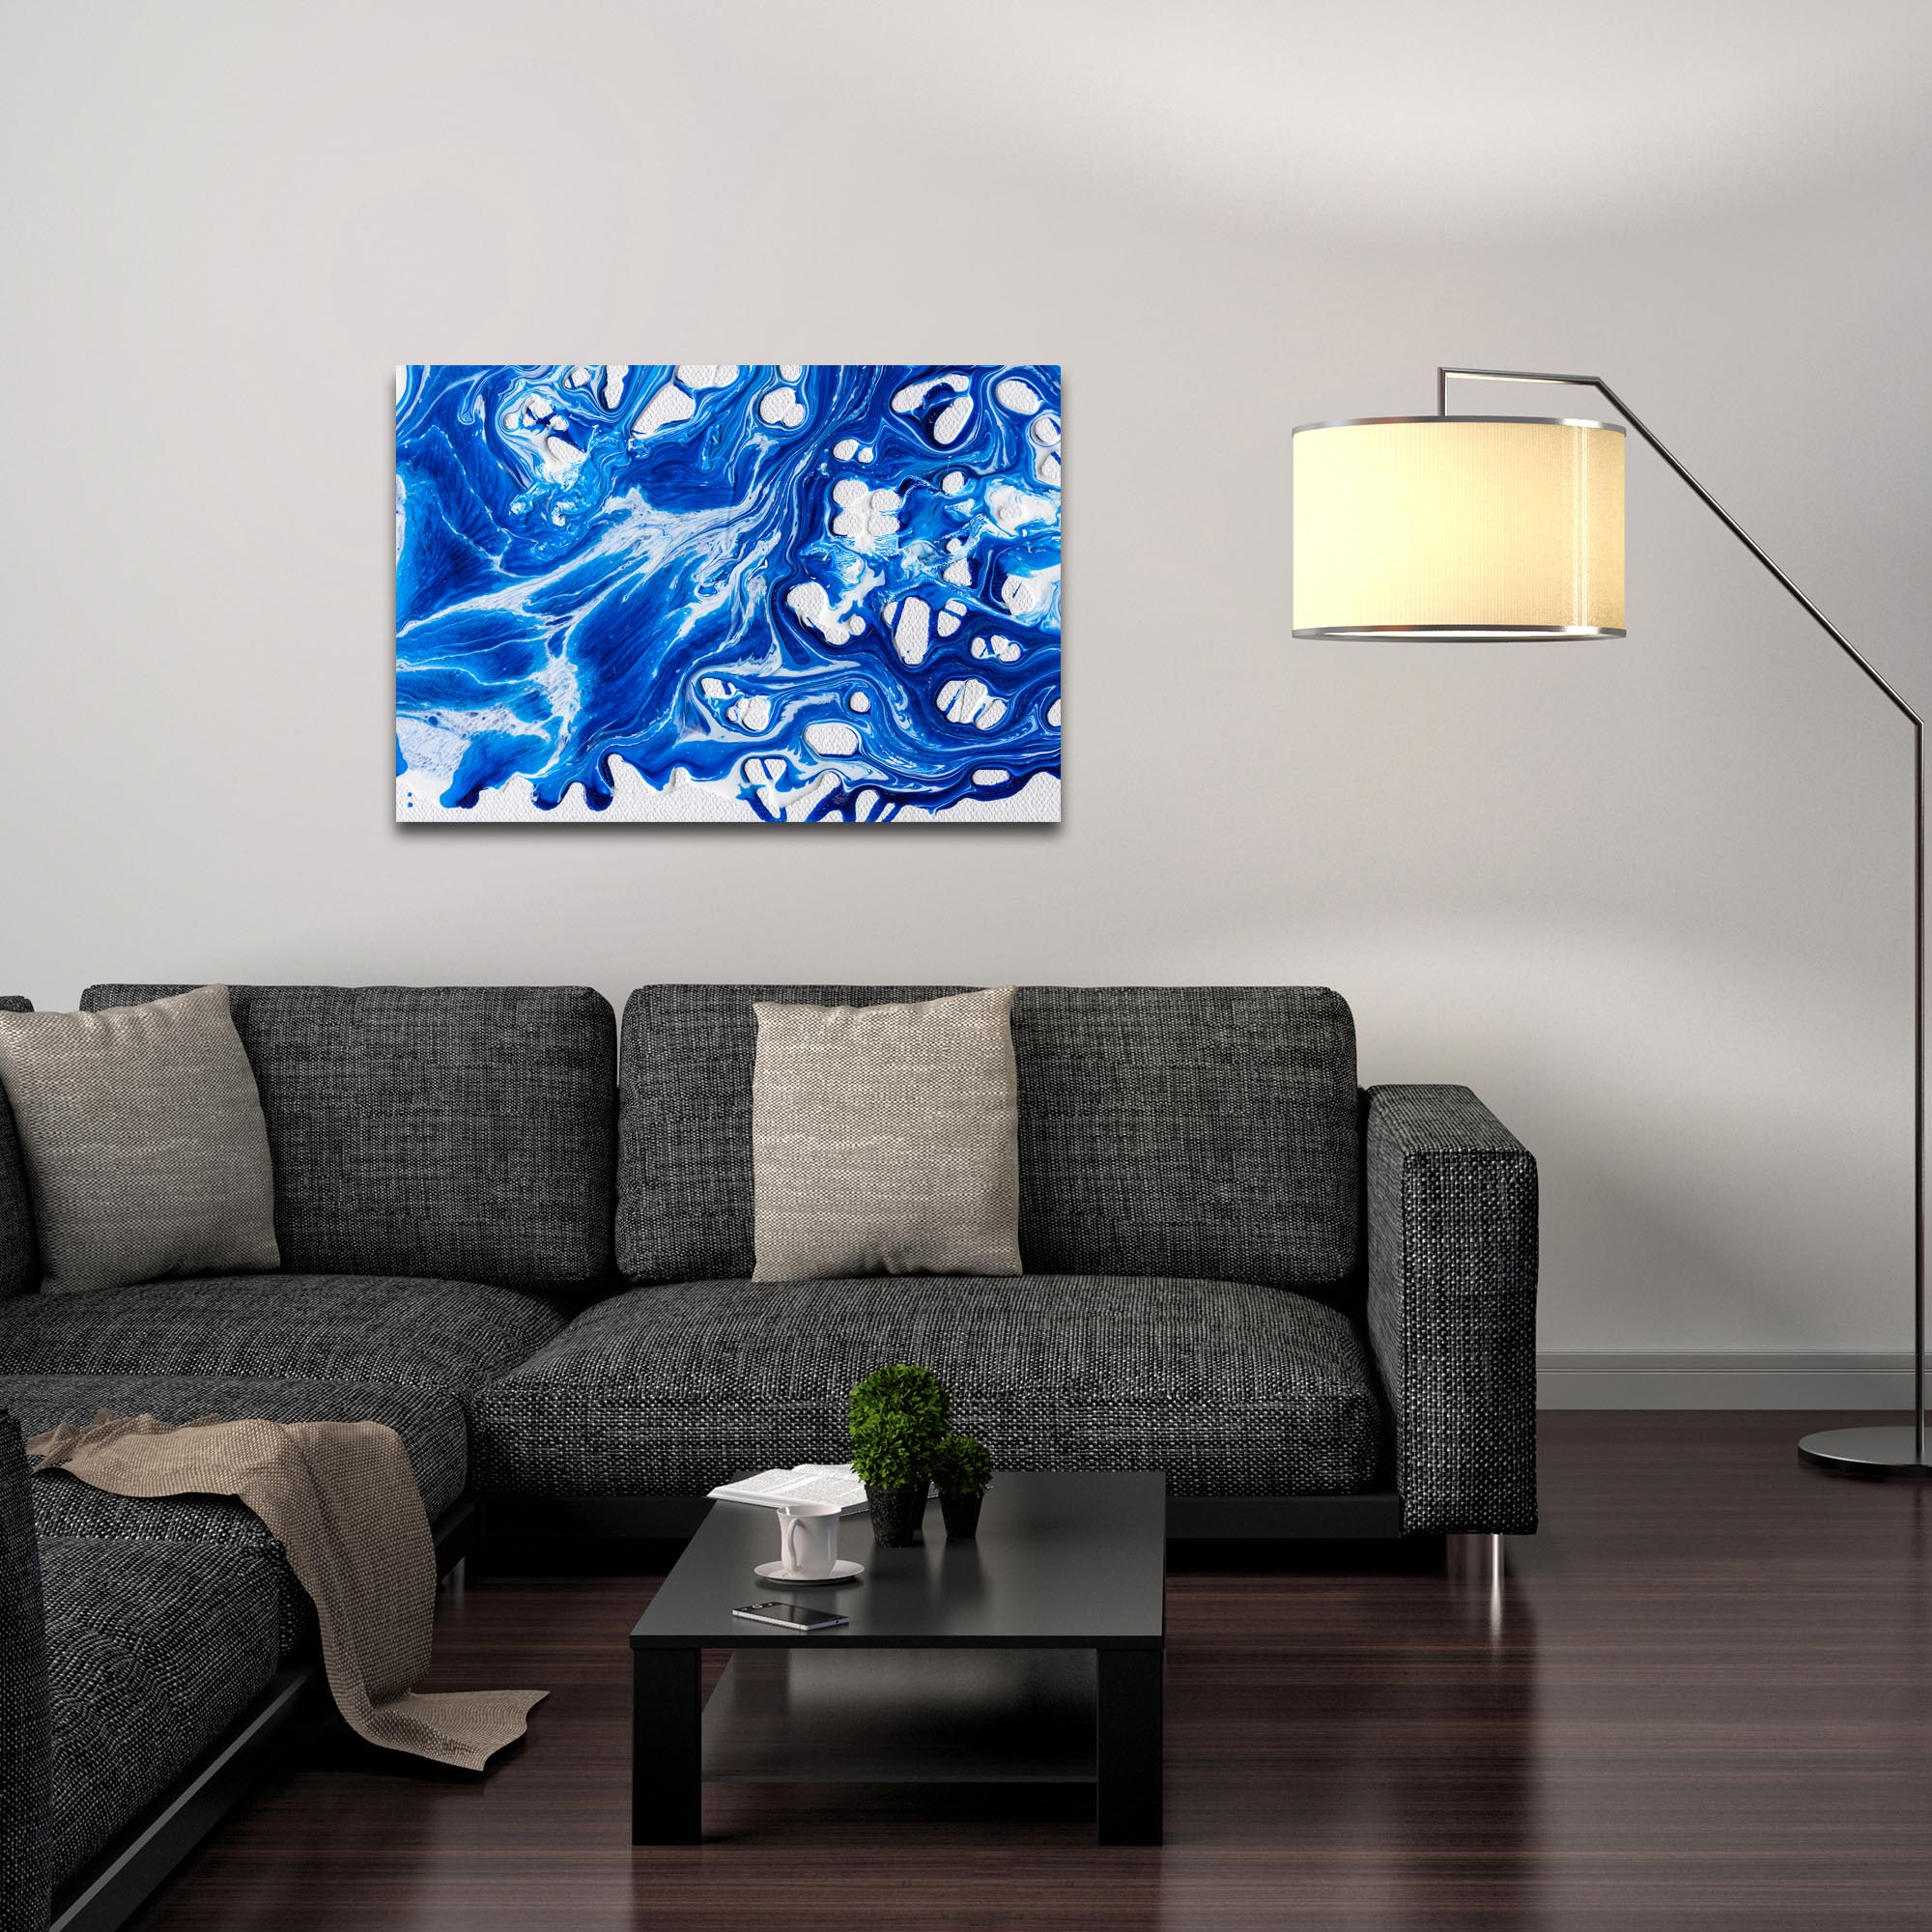 Abstract Wall Art 'Coastal Waters 1' - Colorful Urban Decor on Metal or Plexiglass - Lifestyle View